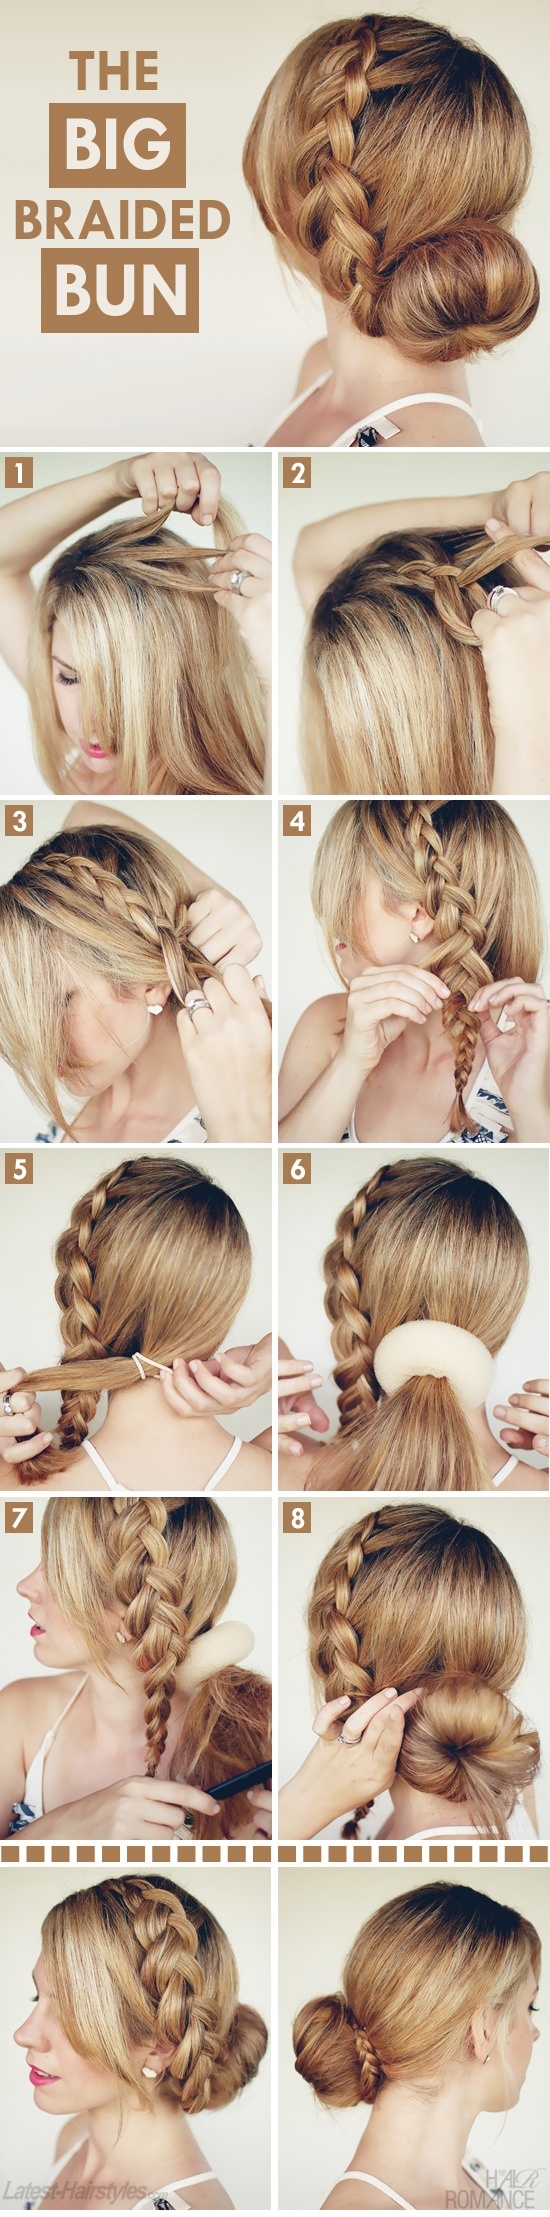 Crown braid and bun